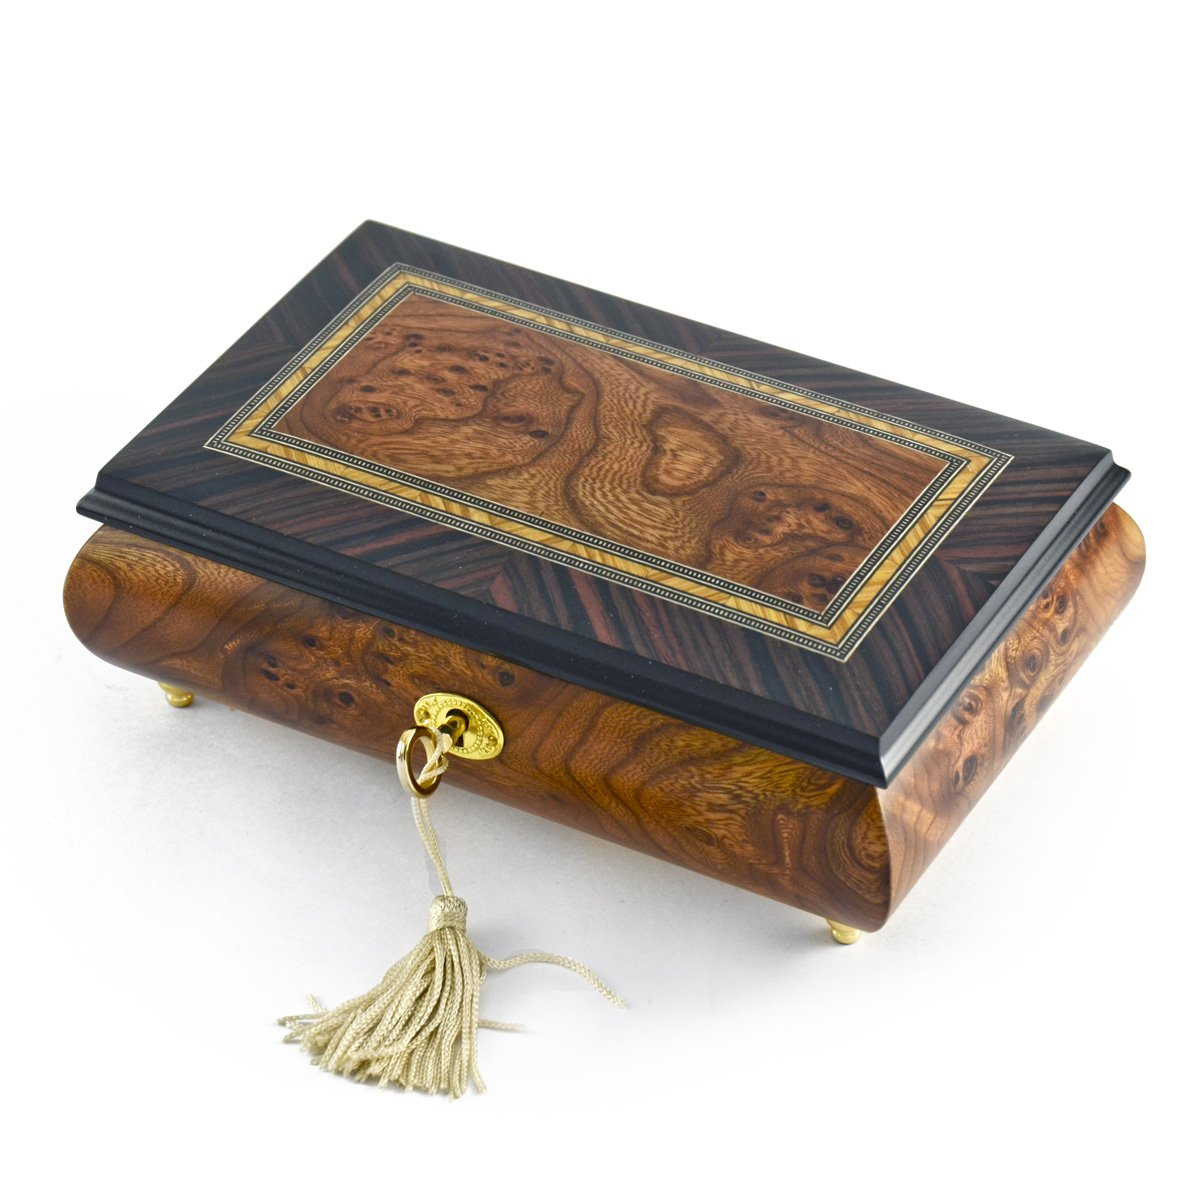 Classic Style 18 Note Italian Music Jewelry Box with Lock and Key - Rock of Ages - Christian Version by MusicBoxAttic